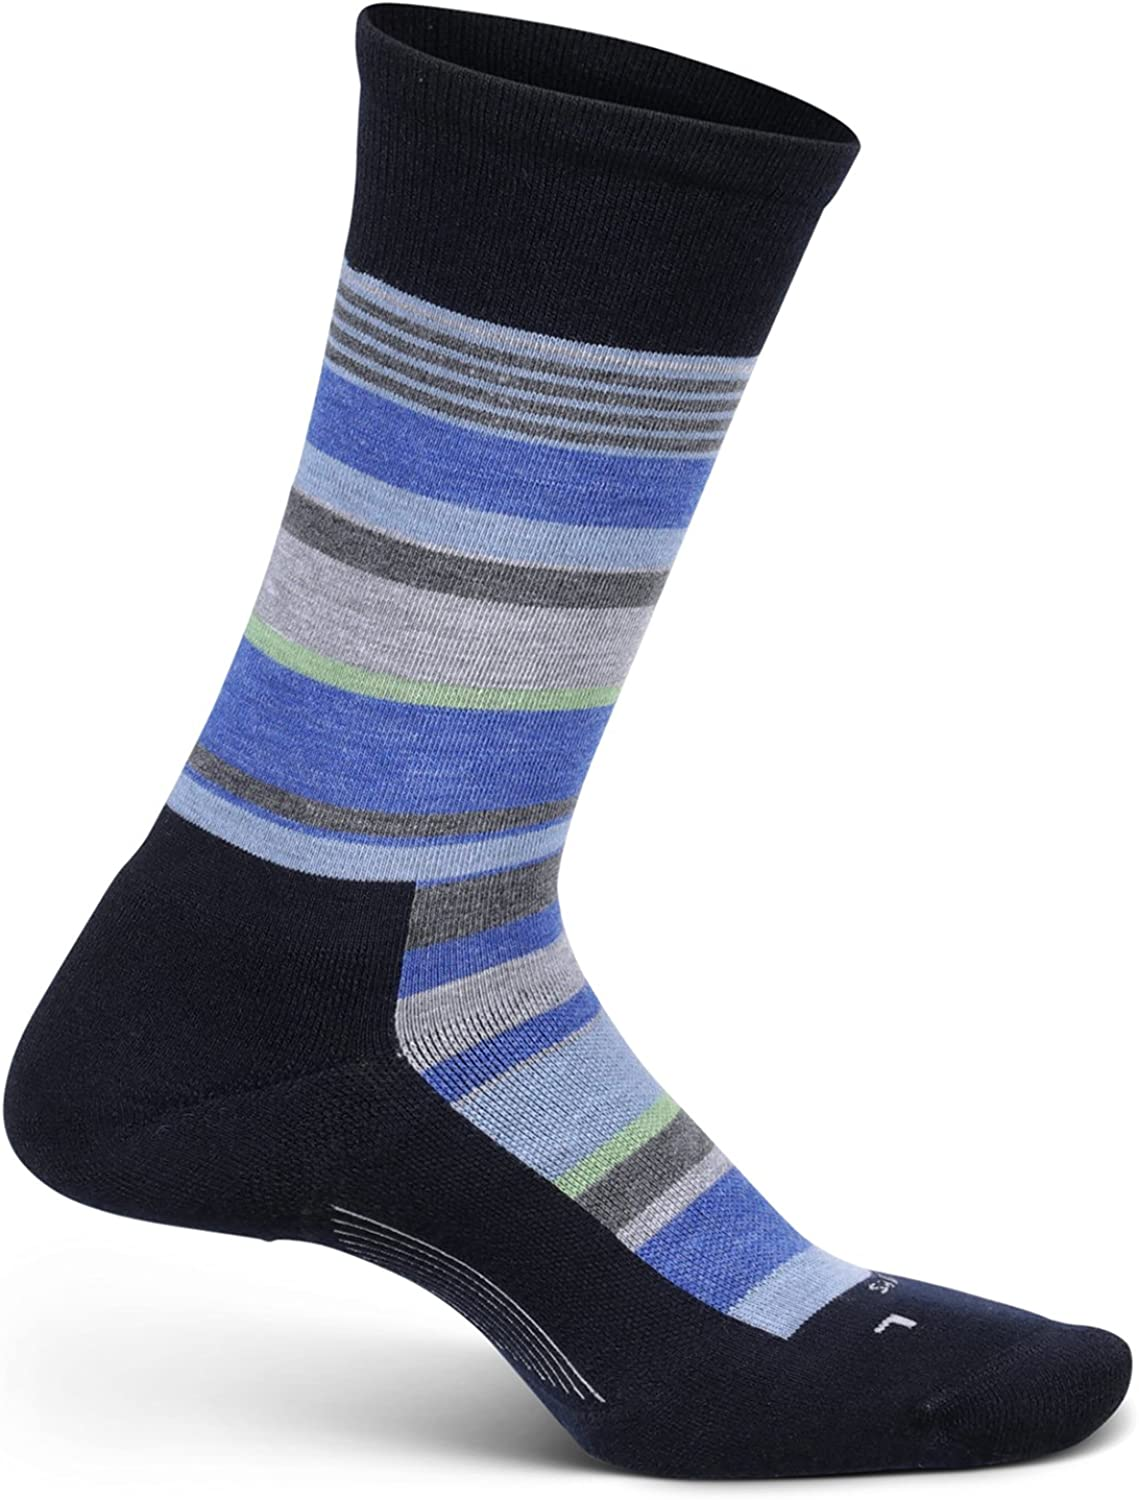 Medium Feetures Cushion BE BOLD Striped Crew Socks with Targeted Compression